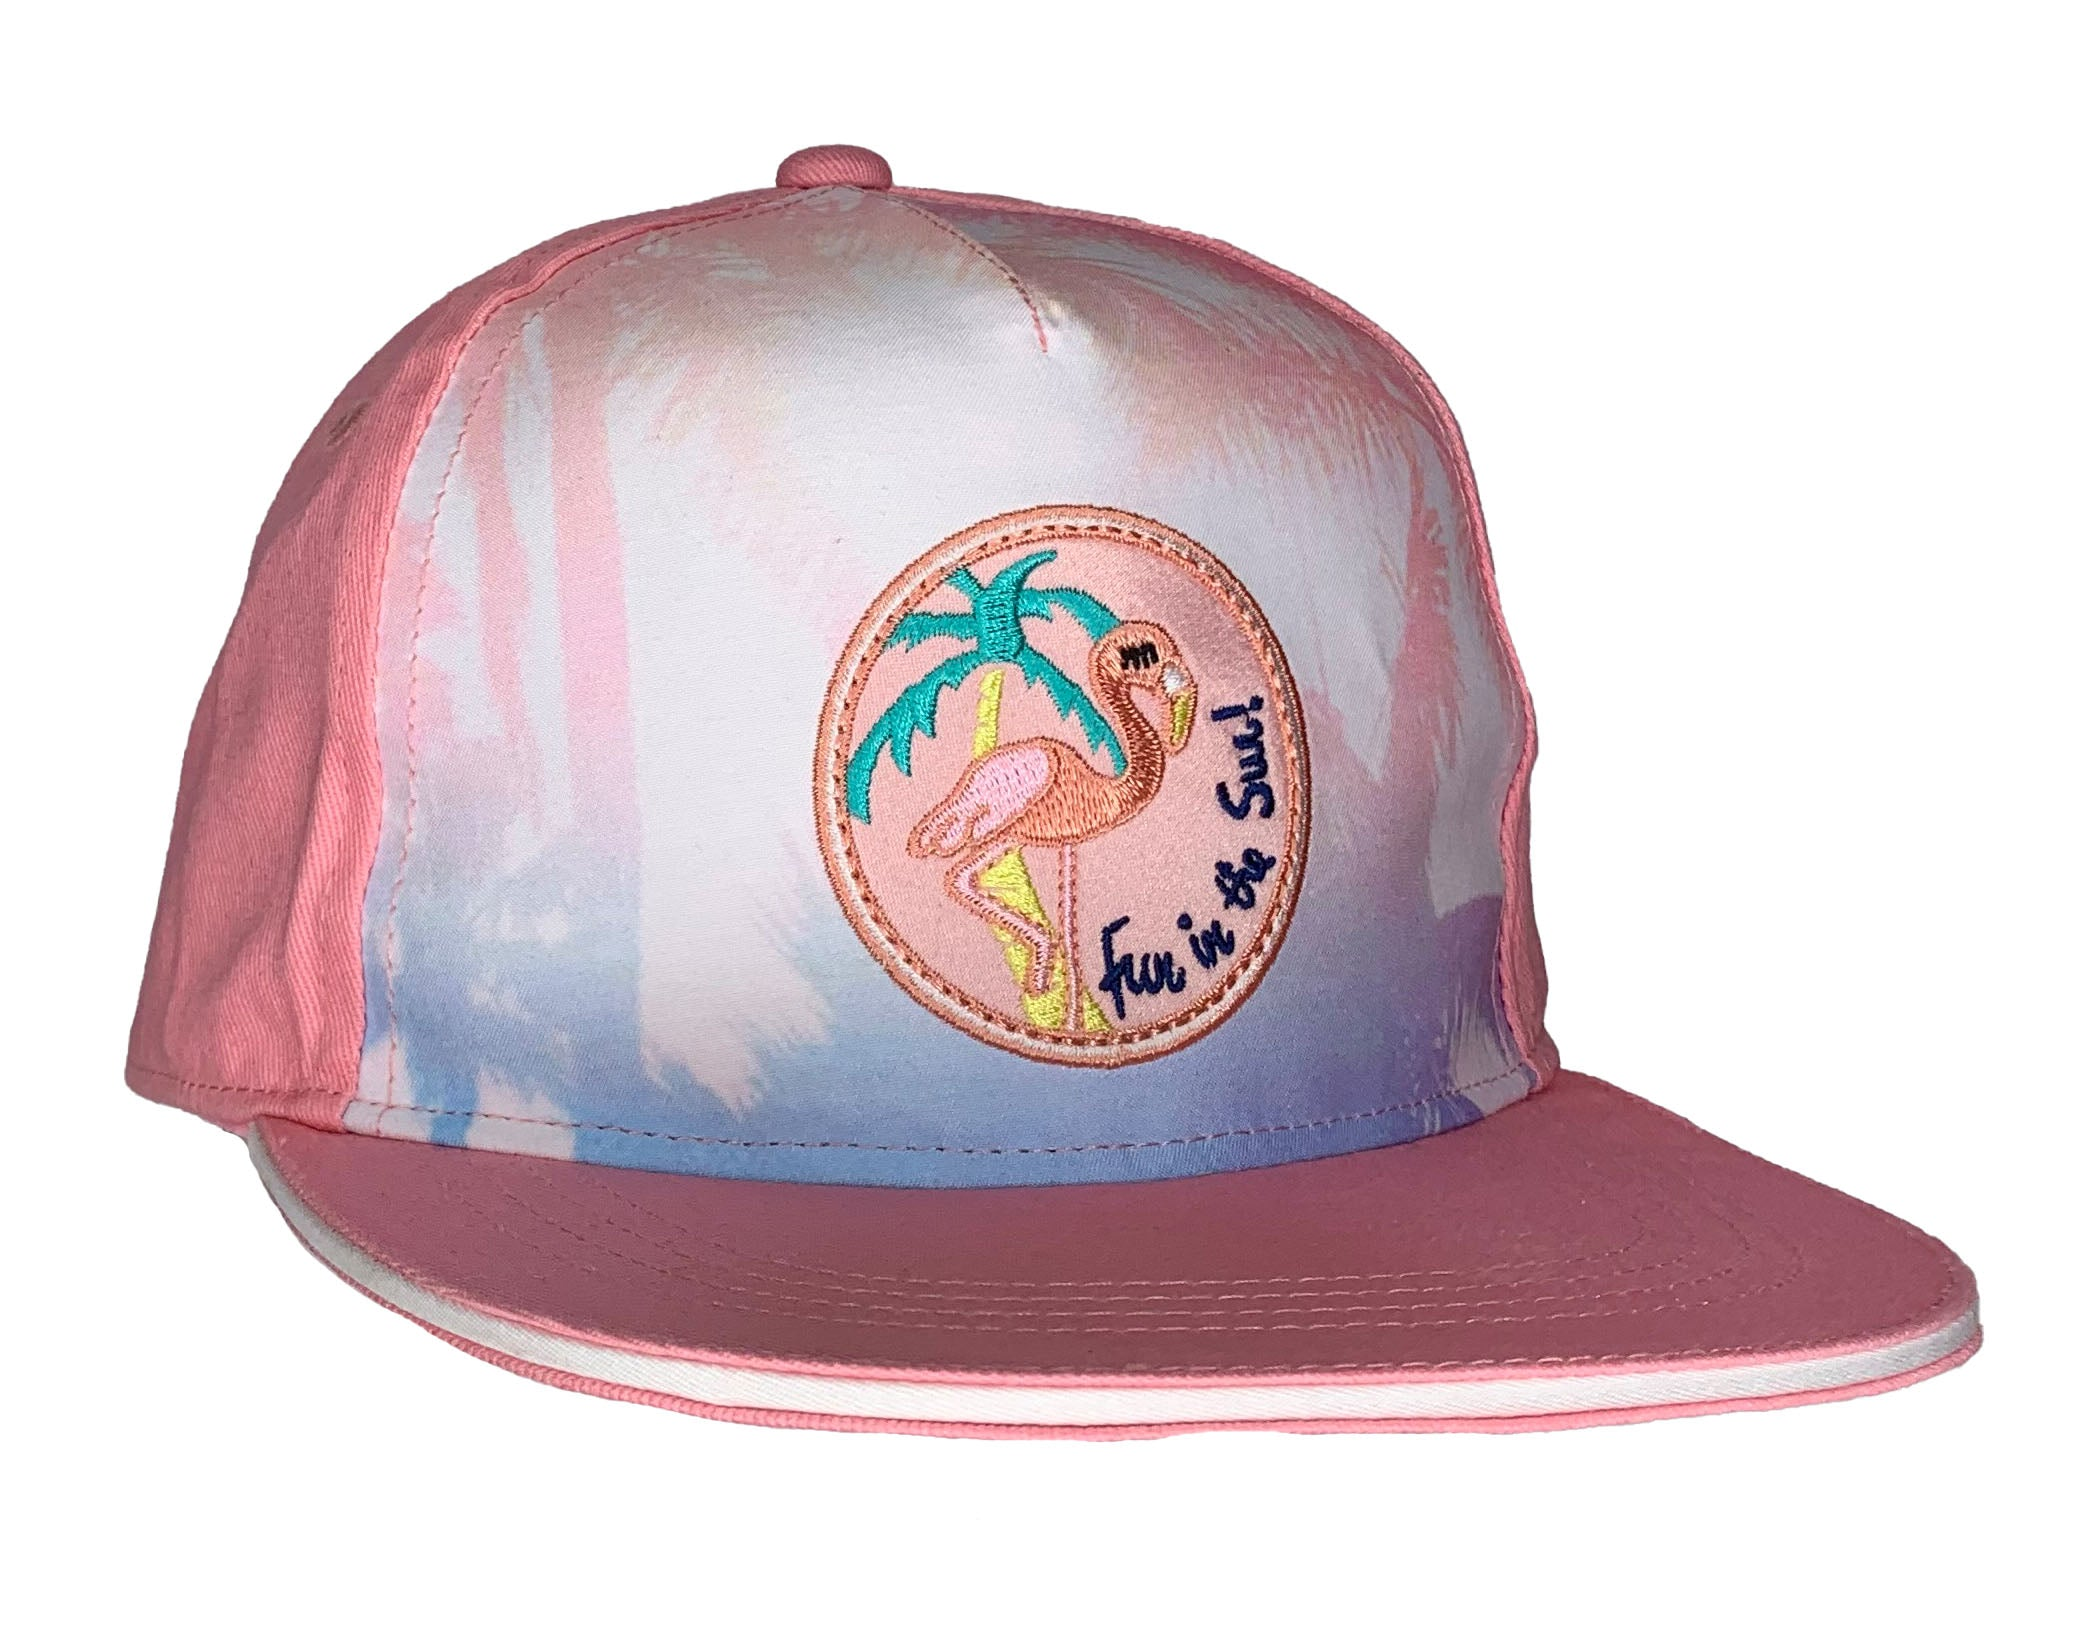 Maximo Girls Cap Flamingo 03503-919676